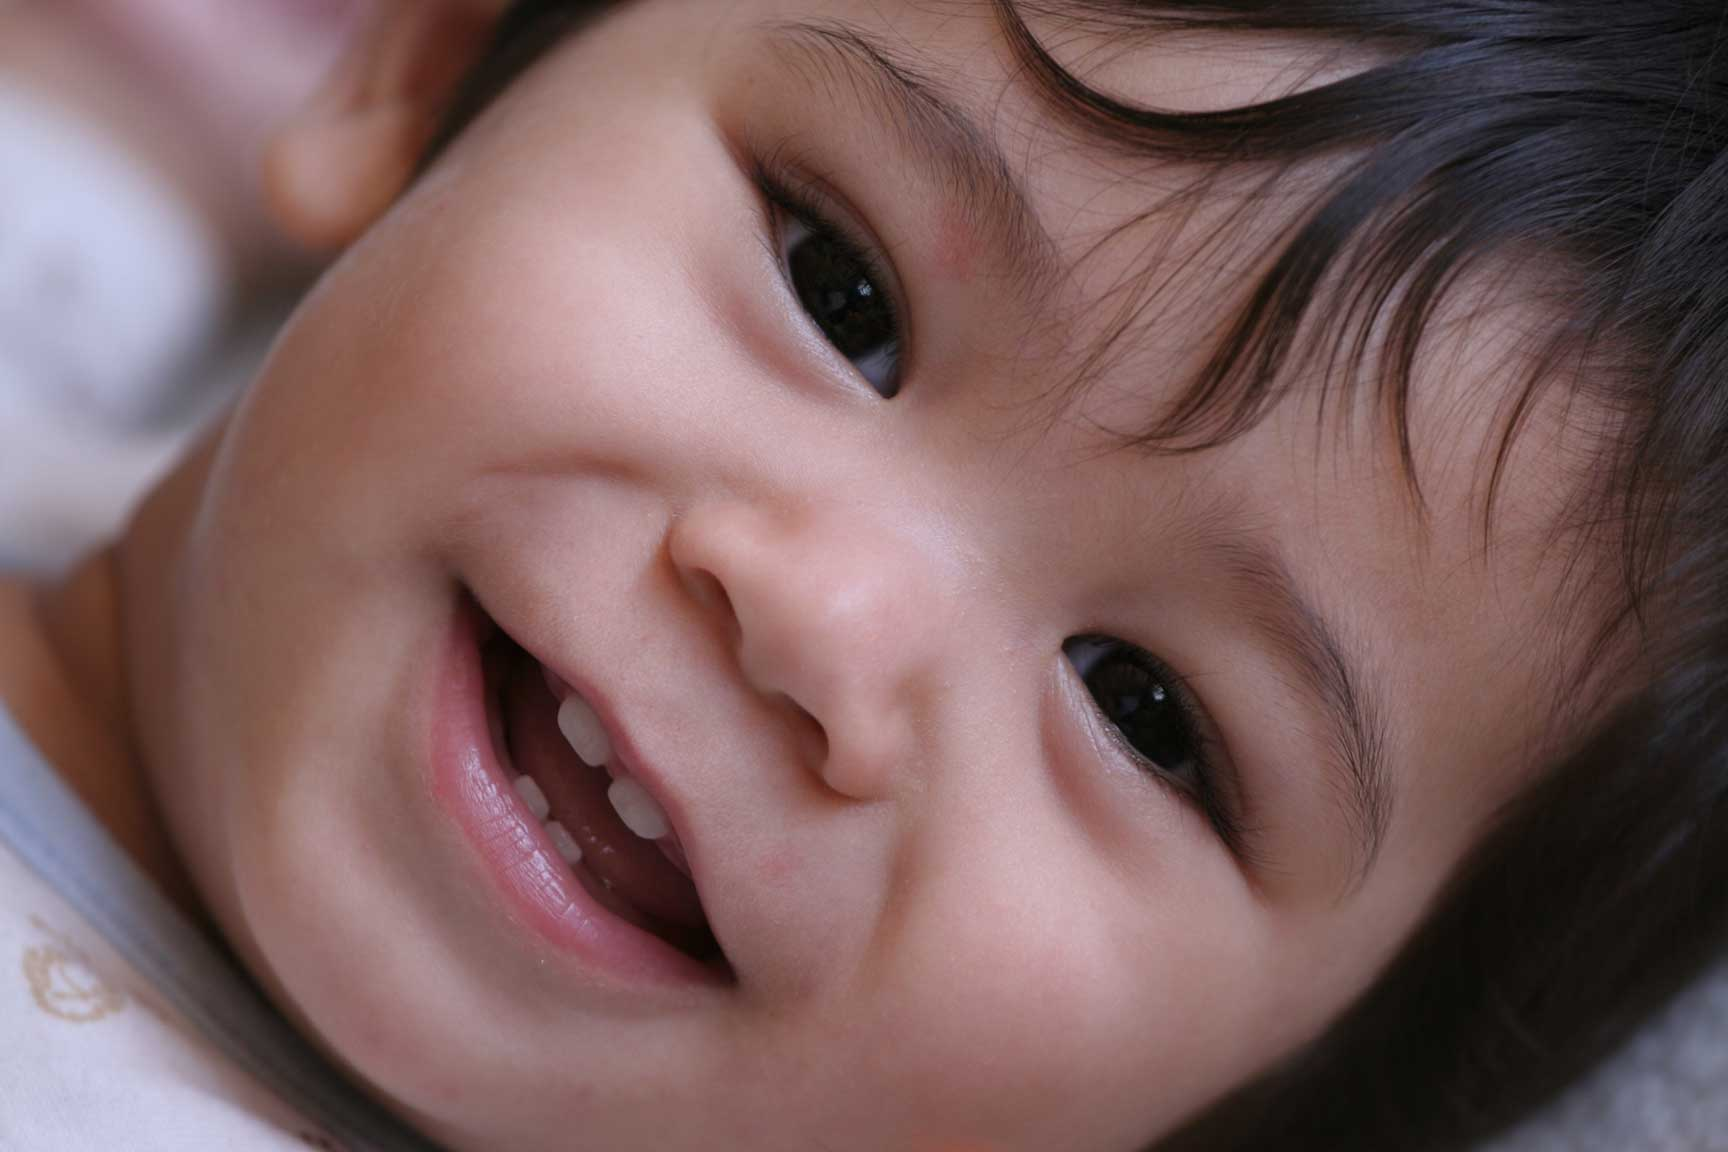 infant smiling and showing 4 baby teeth